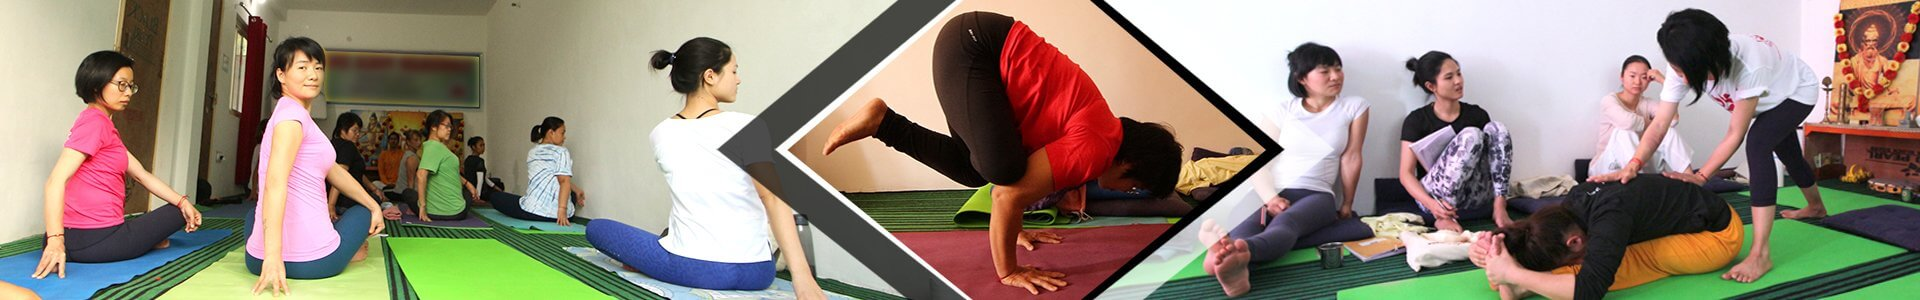 best-yoga-school-in-rishikesh-india-sanskar-yogashala